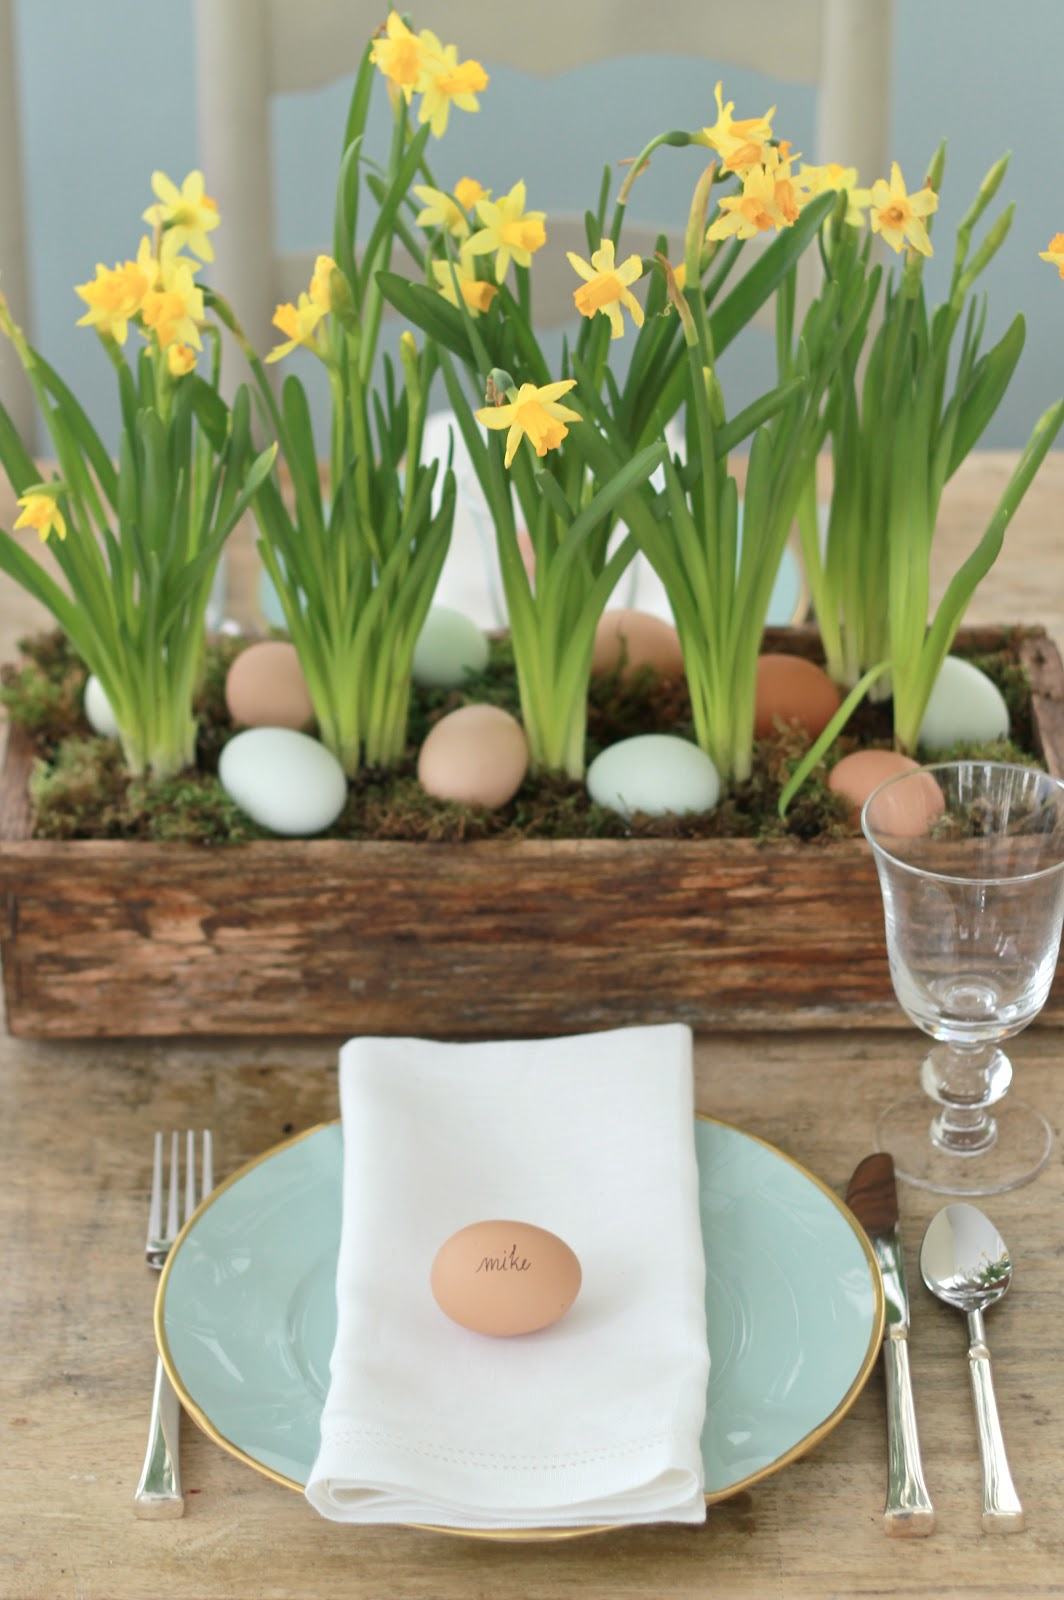 Jenny Steffens Hobick Easter Egg Hunt Centerpiece Blue Eggs Daffodils